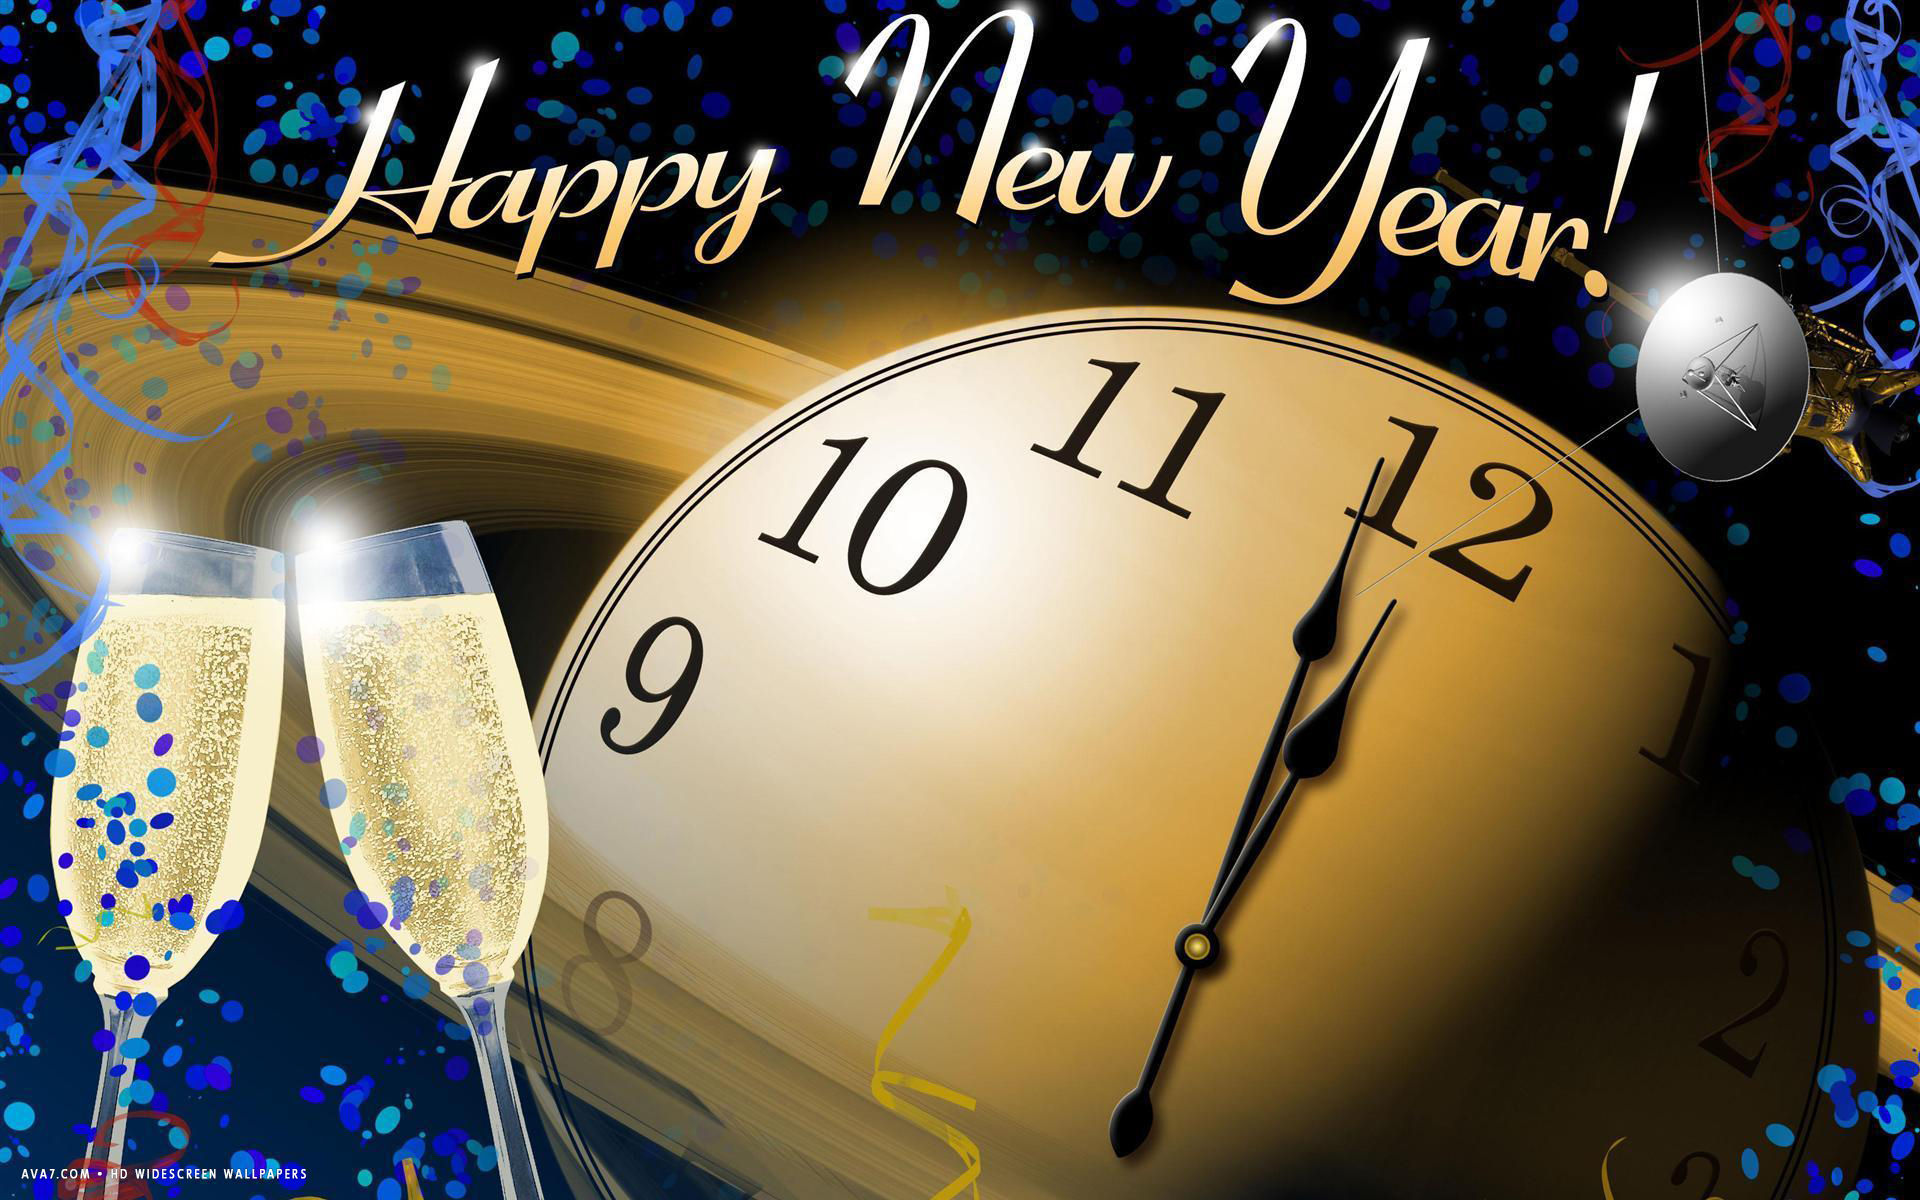 new year midnight clock greetings champagne celebration space holiday hd widescreen wallpaper